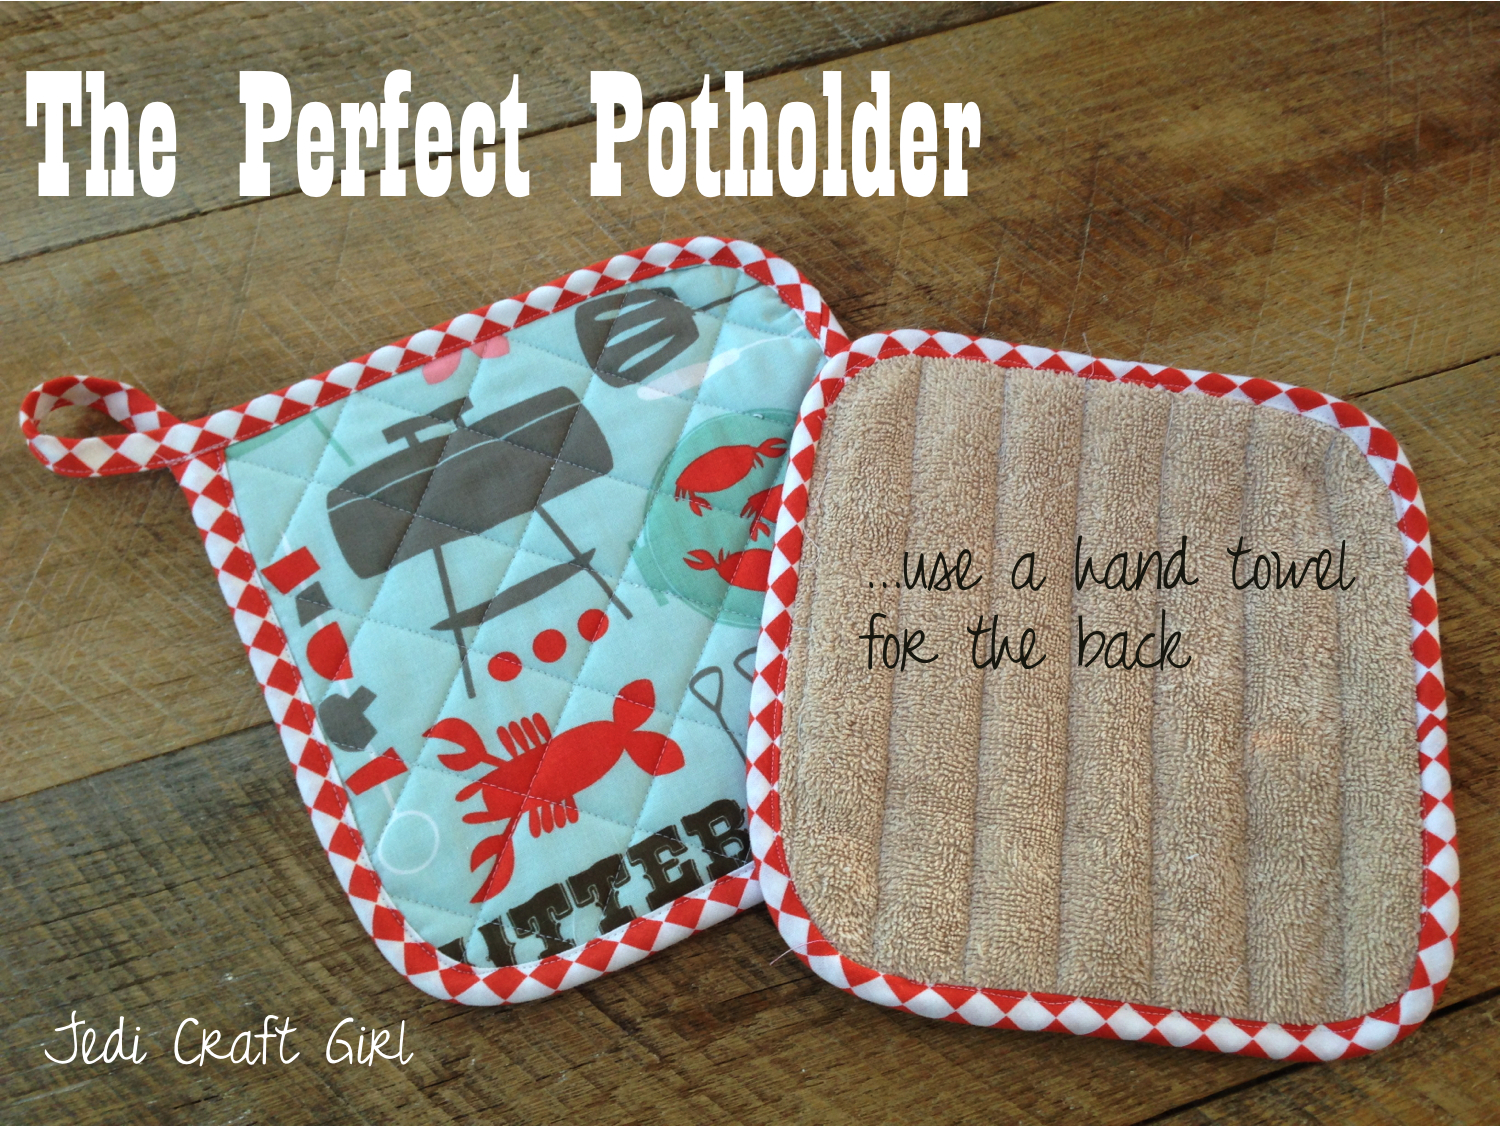 Sew Potholders Pot Holders The Perfect Potholder Fathers Day Tutorial